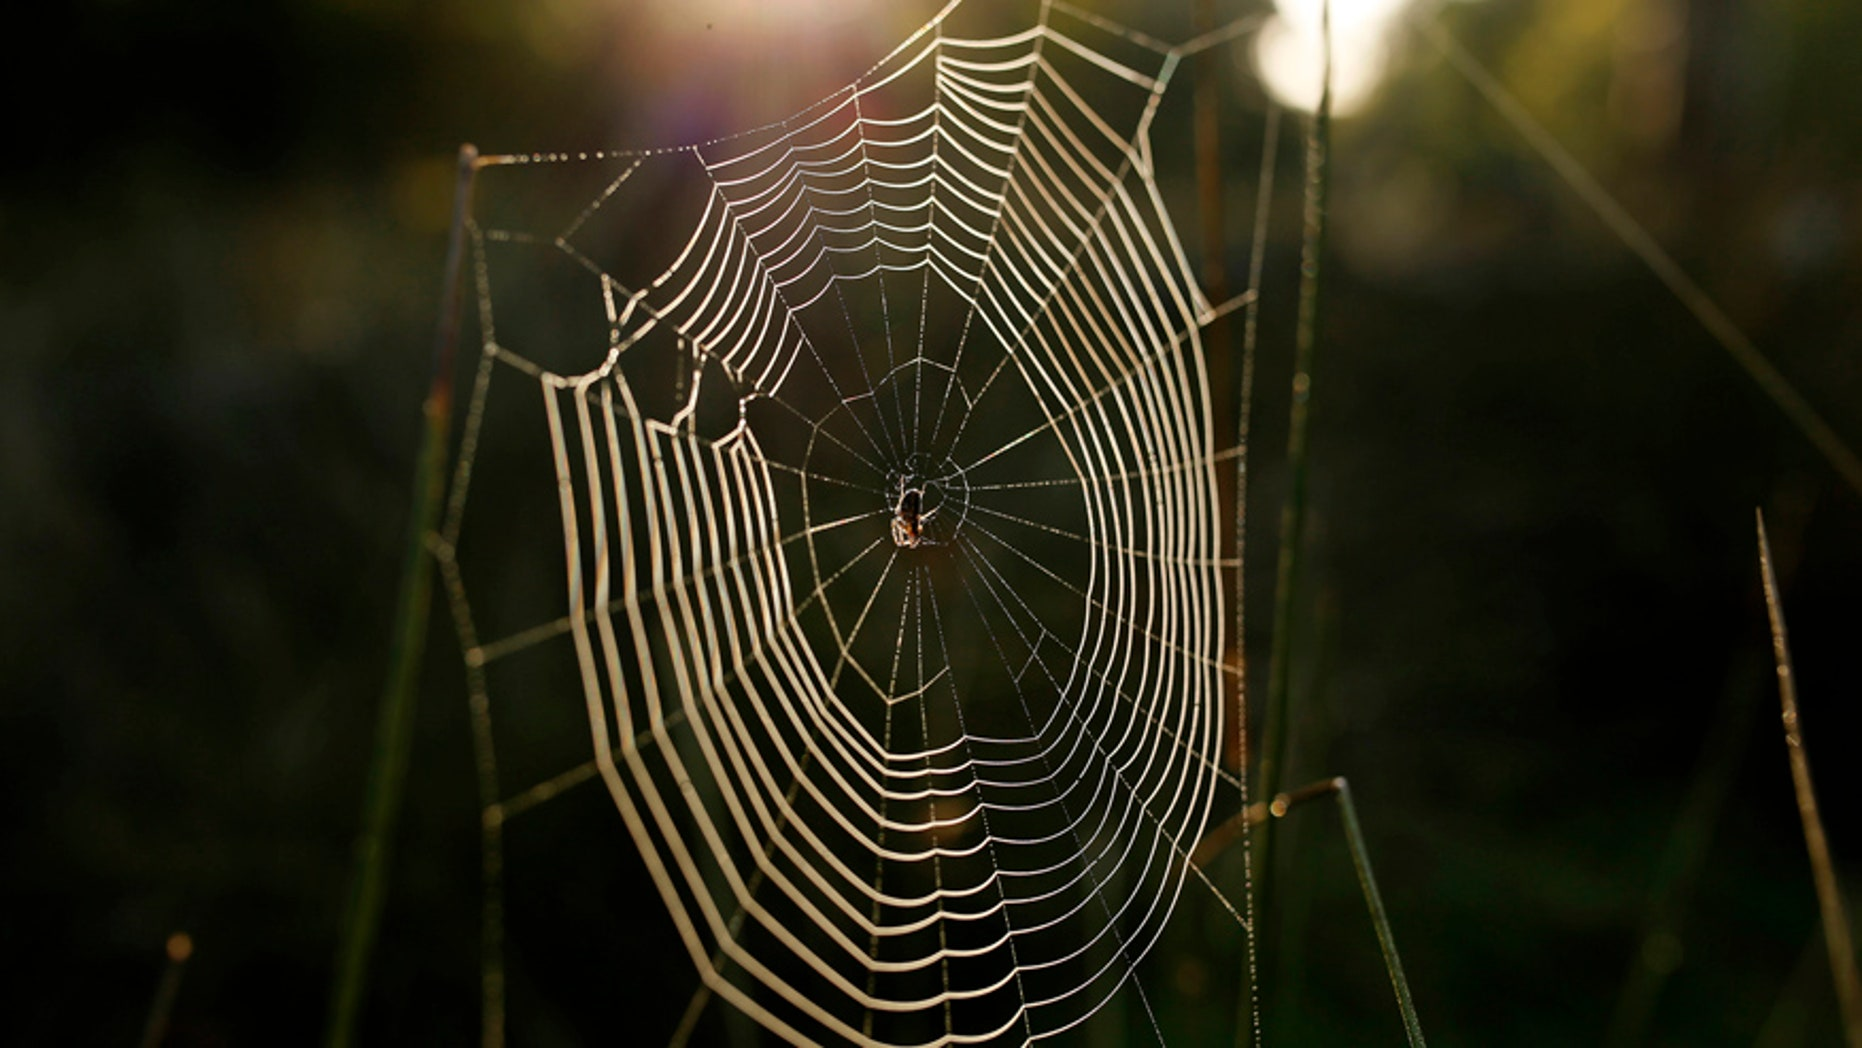 File photo. A spider's web glistens in the morning sun in Dunham Massey country park near Manchester in northern England.